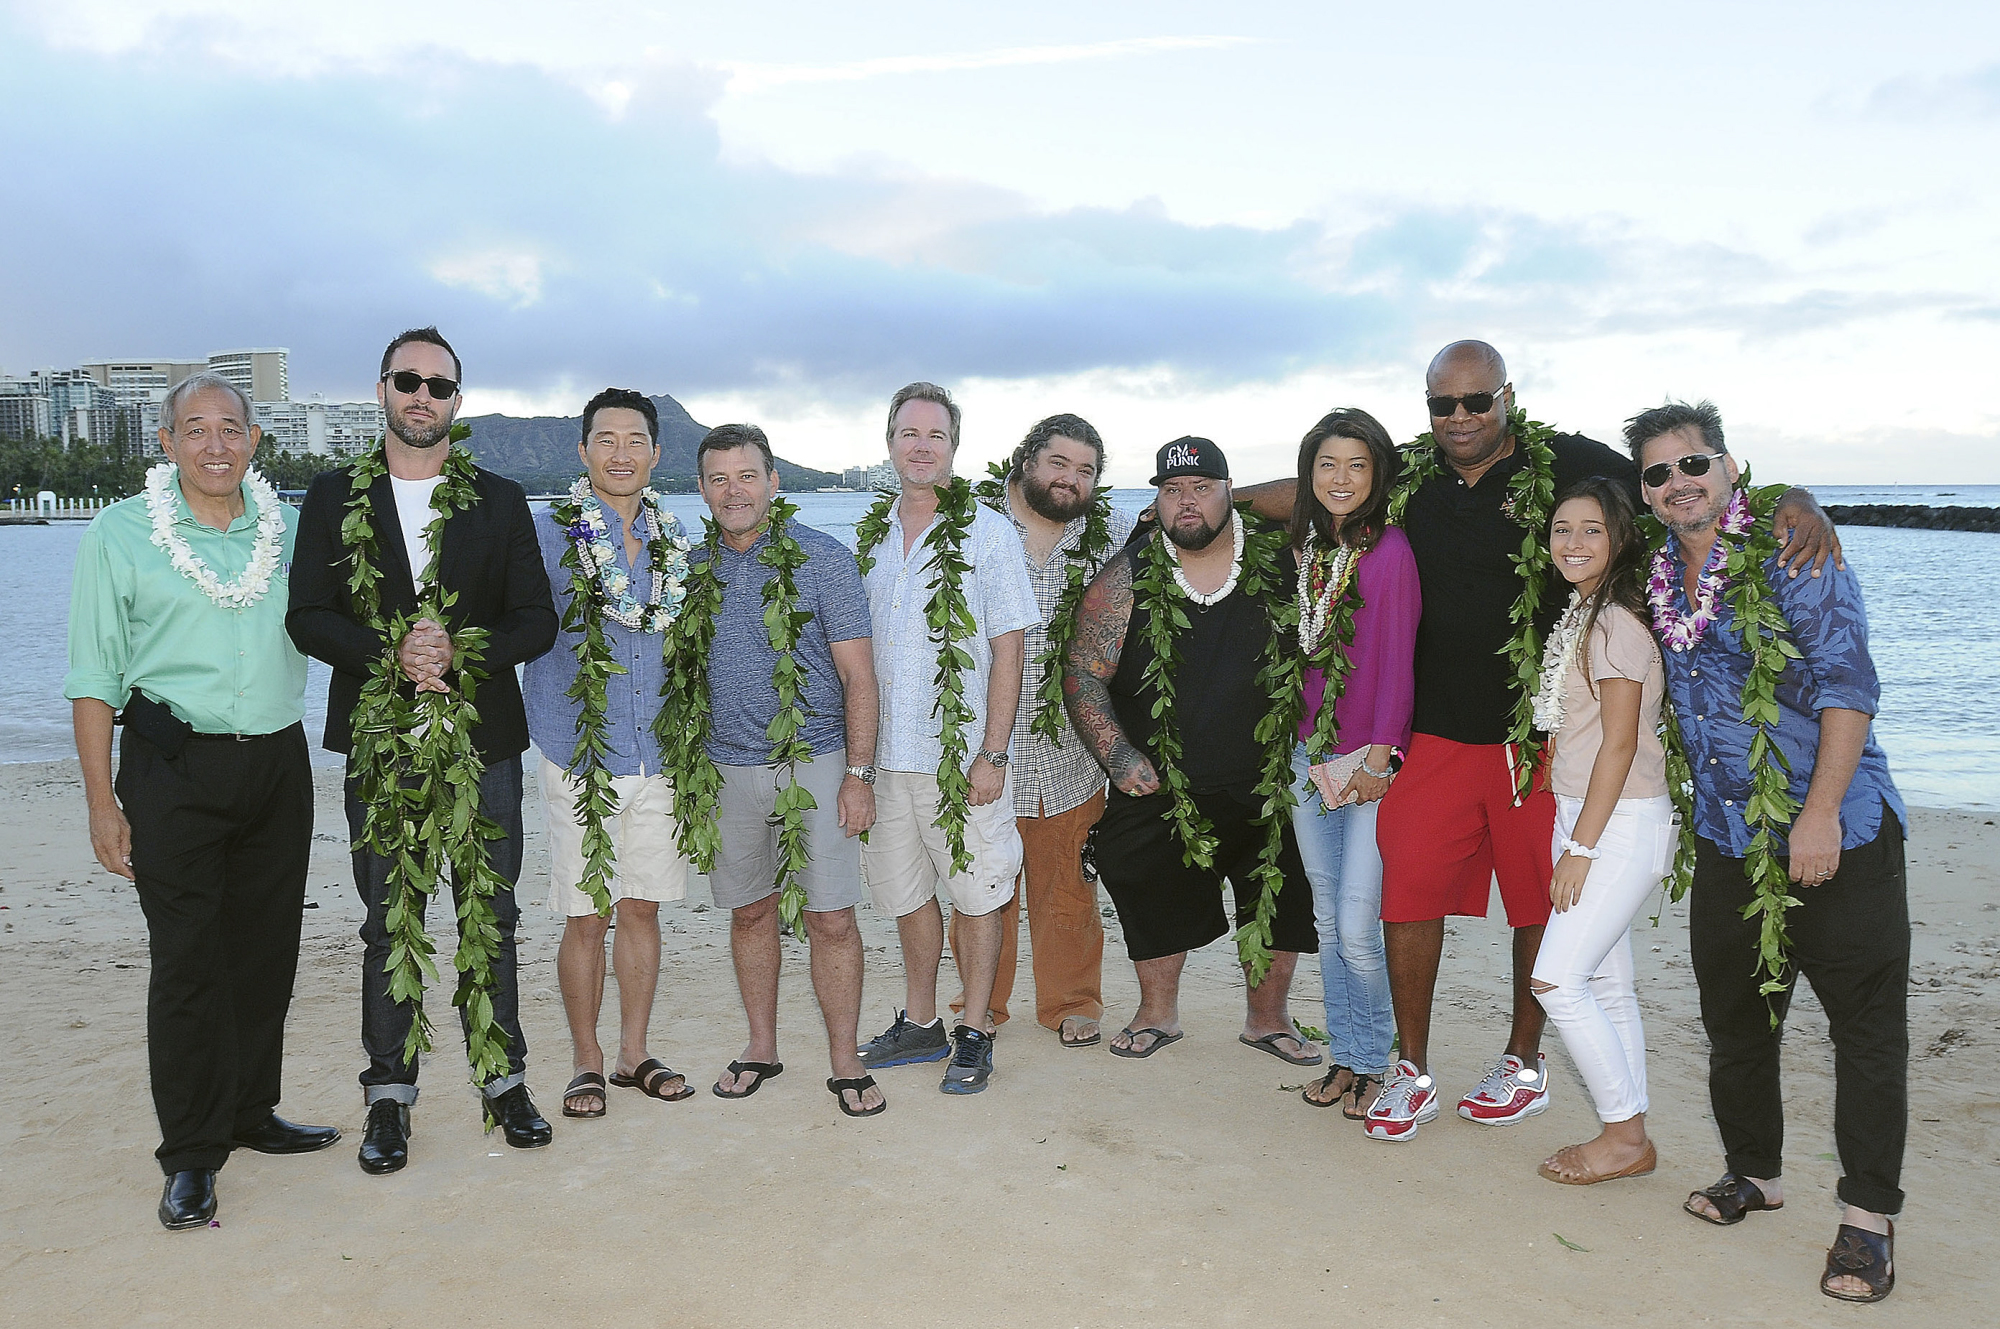 The attendees wore traditional royal maile leis for the event.